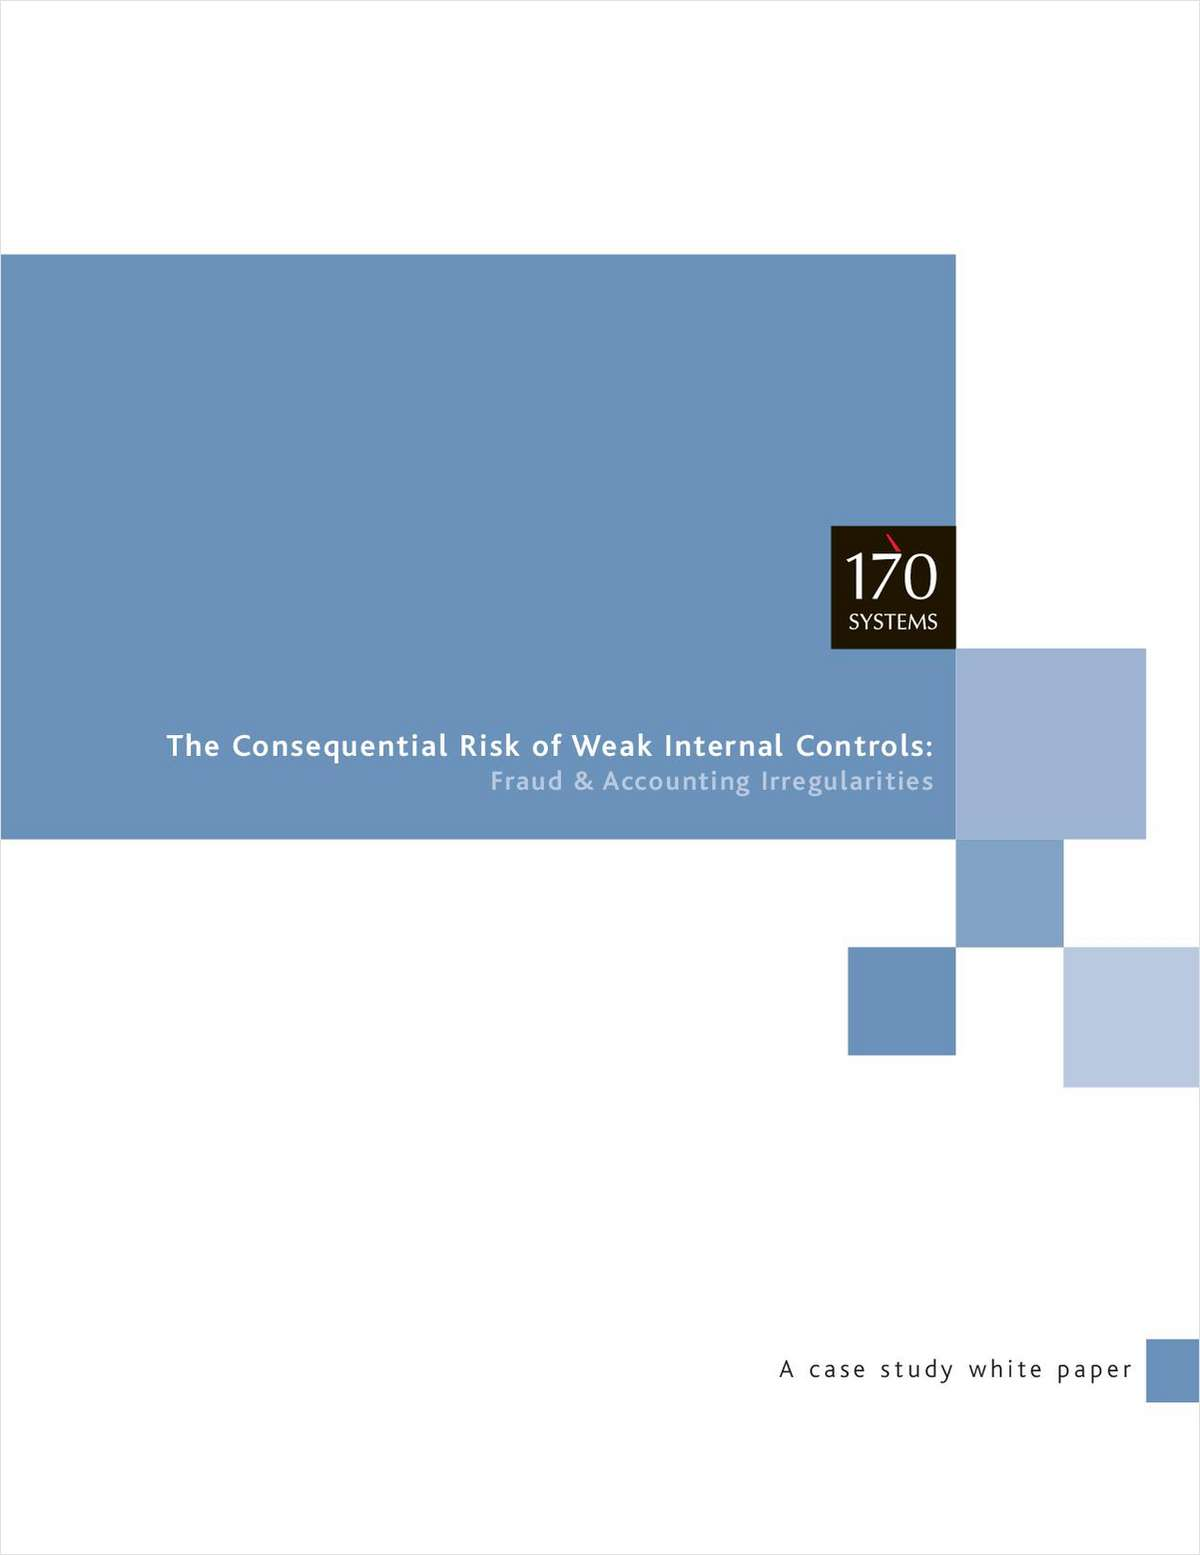 The Consequential Risk Of Weak Internal Controls: Fraud and Accounting Irregularities